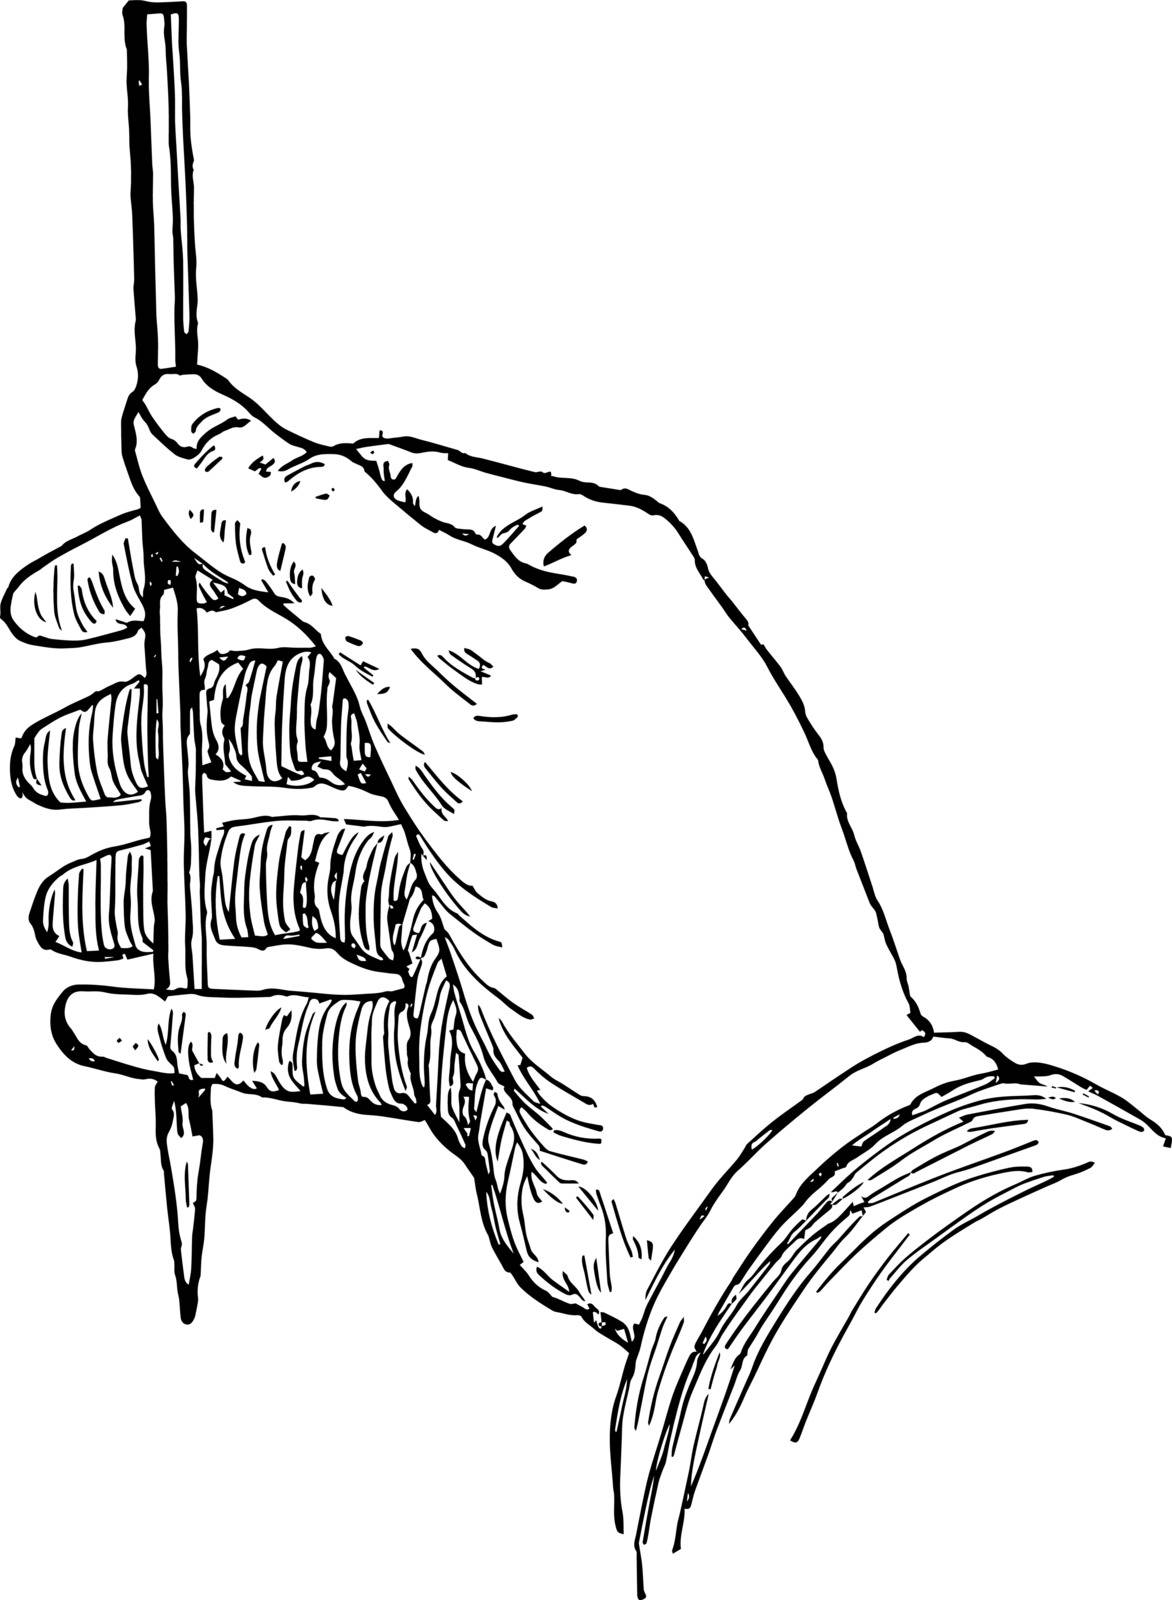 Estimating Lines using Pencil is the thumb the length of pencil which covers a line of the model rotating the arm it is estimating the proportion of this measurement to the second line vintage line drawing or engraving illustration.